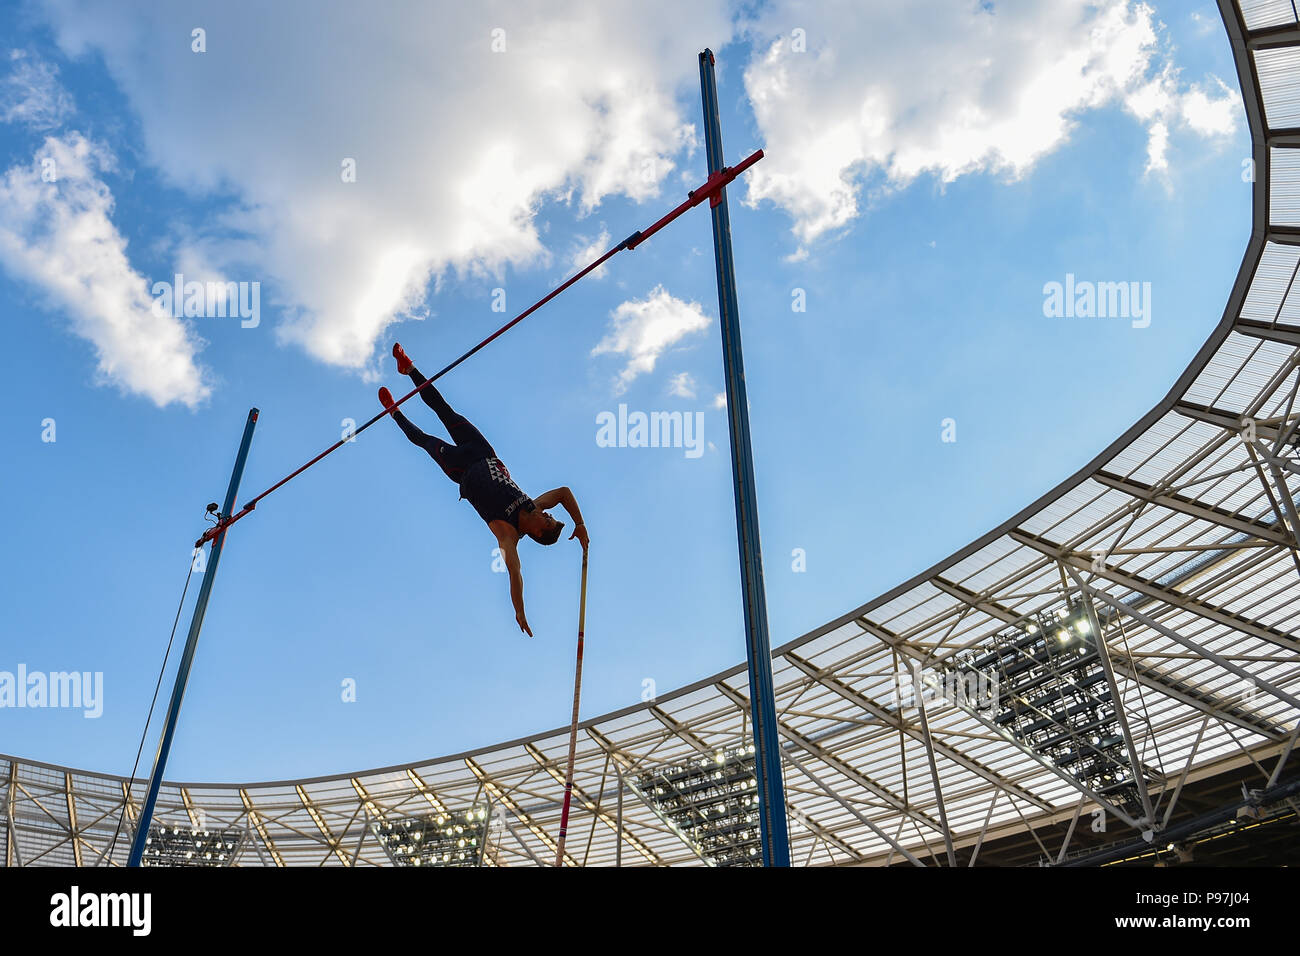 Axel Chapelle (FRA) in Men's Pole Vault during Athletics World Cup London 2018 at London Stadium on Sunday, 15 July 2018. LONDON, ENGLAND. Credit: Taka G Wu - Stock Image